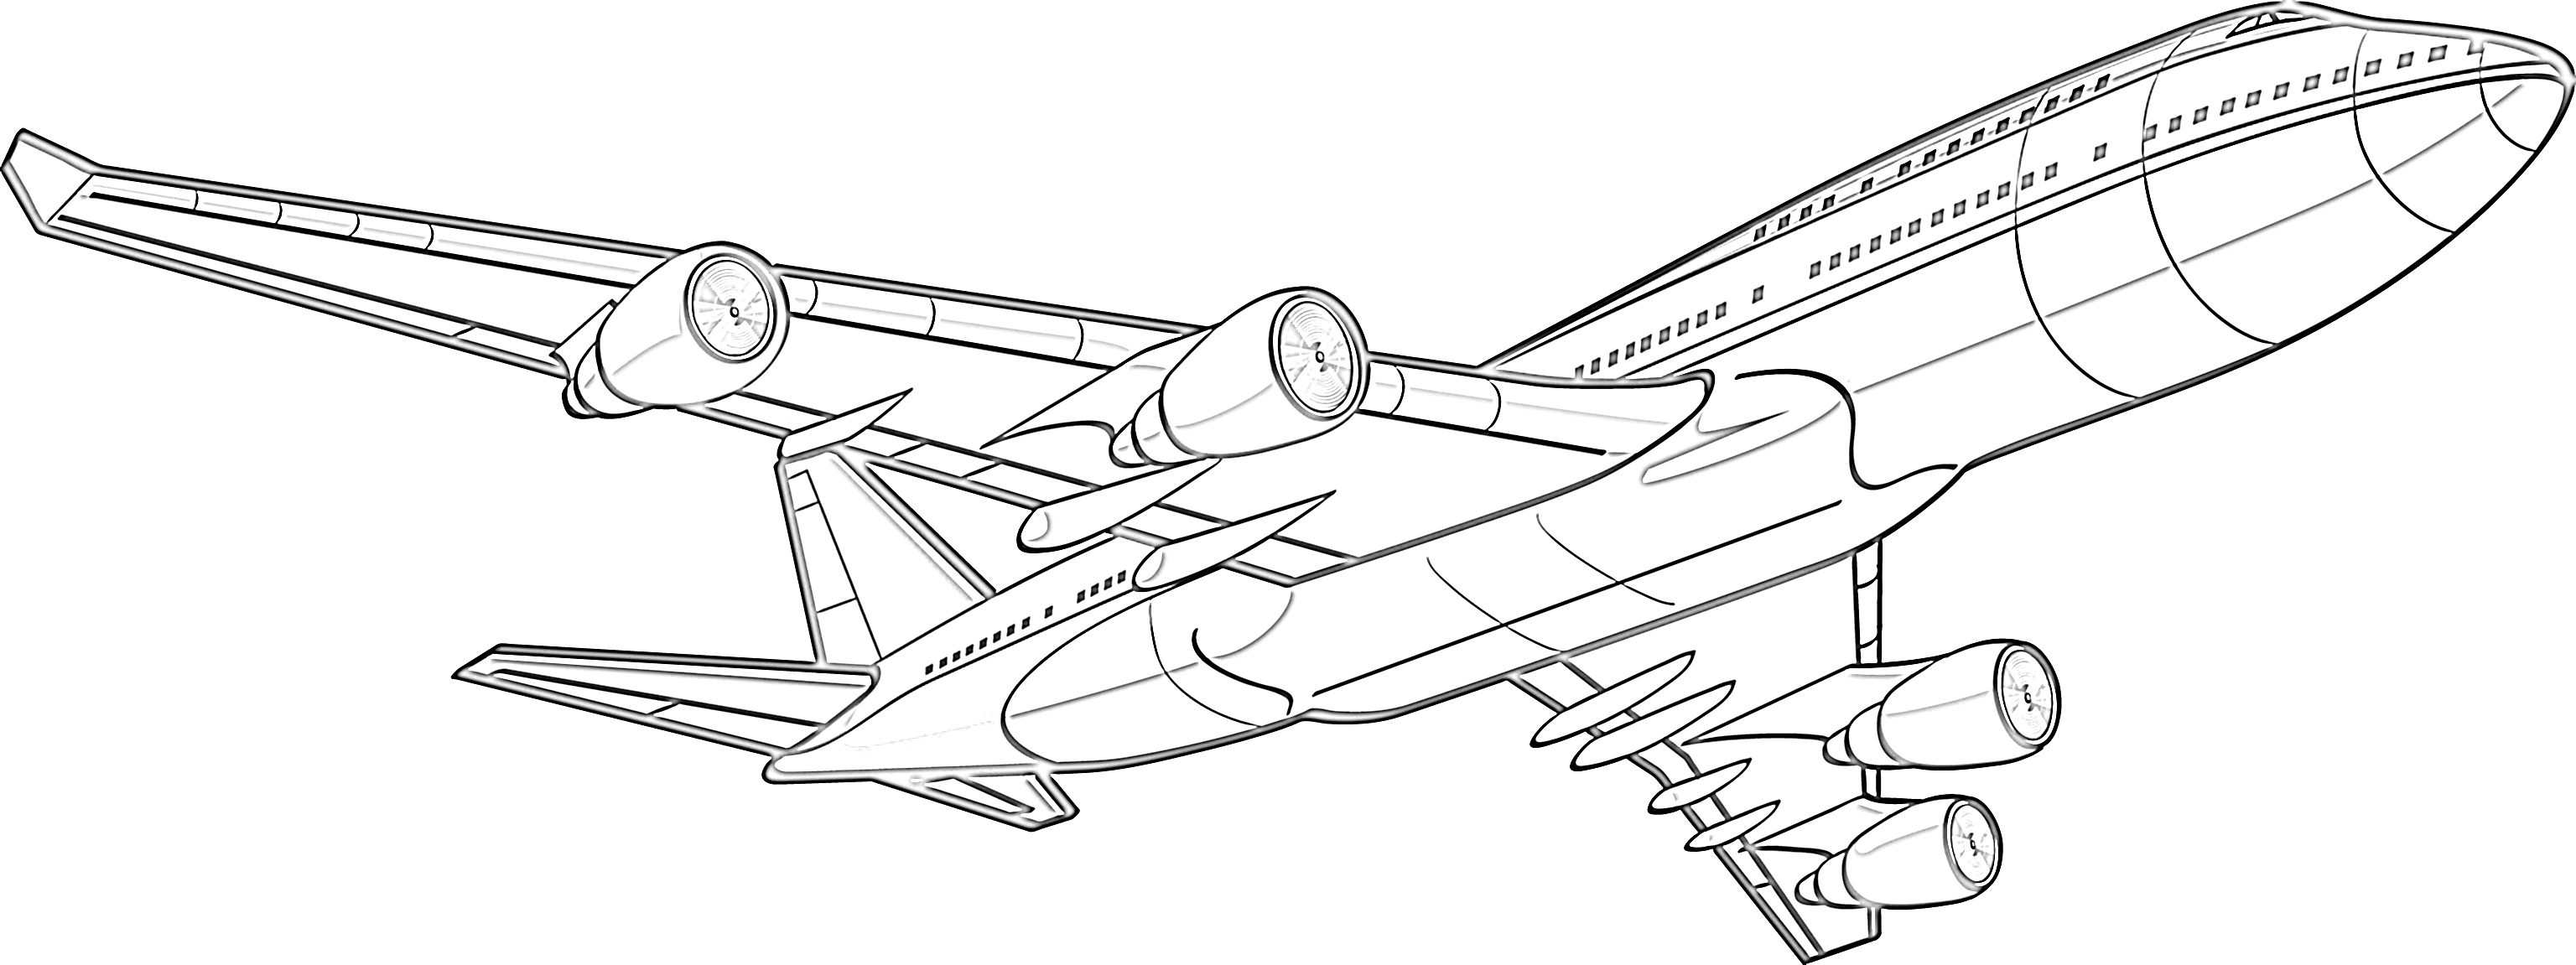 planes coloring pictures free printable airplane coloring pages for kids cool2bkids coloring planes pictures